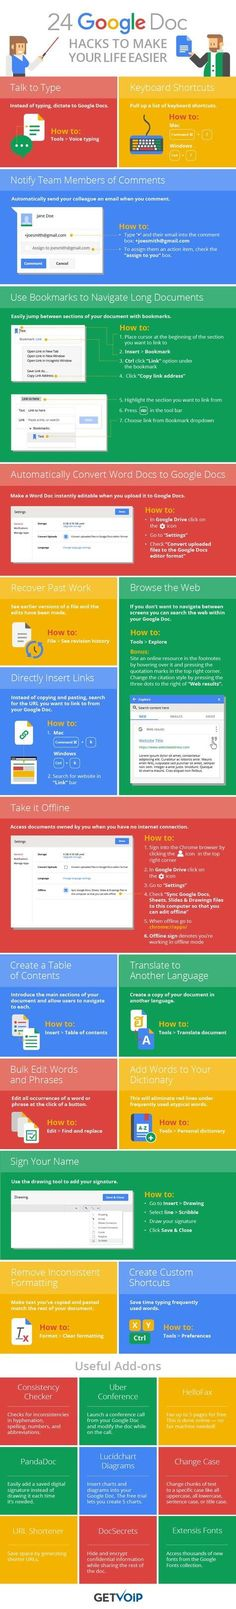 To learn how to use Google Docs to its full potential, check out this infographic.